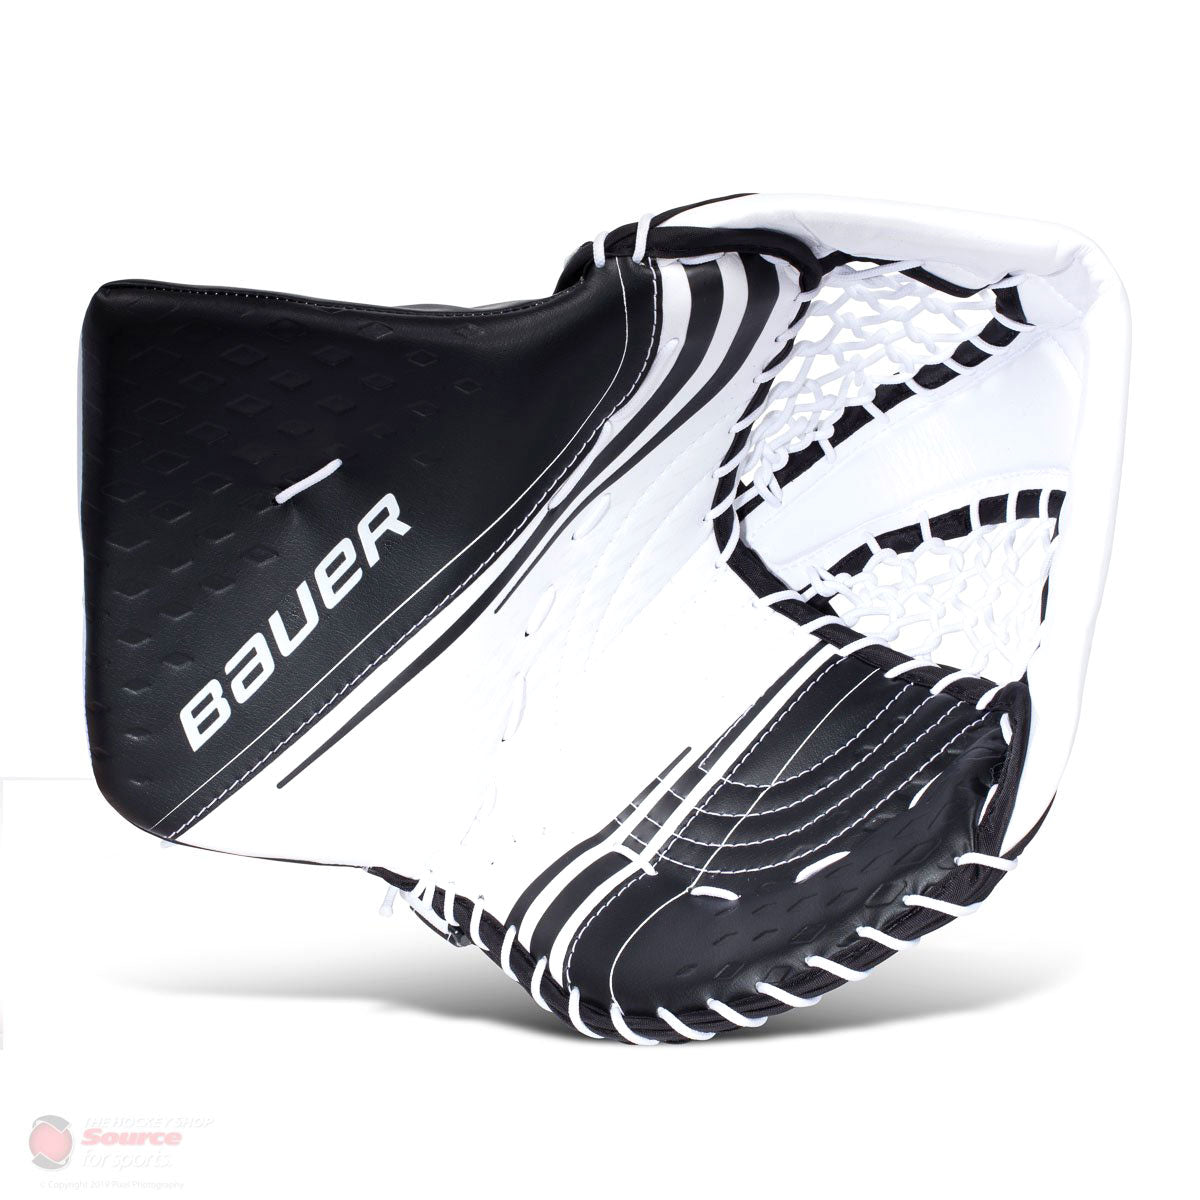 Bauer Vapor 2X Intermediate Goalie Catcher